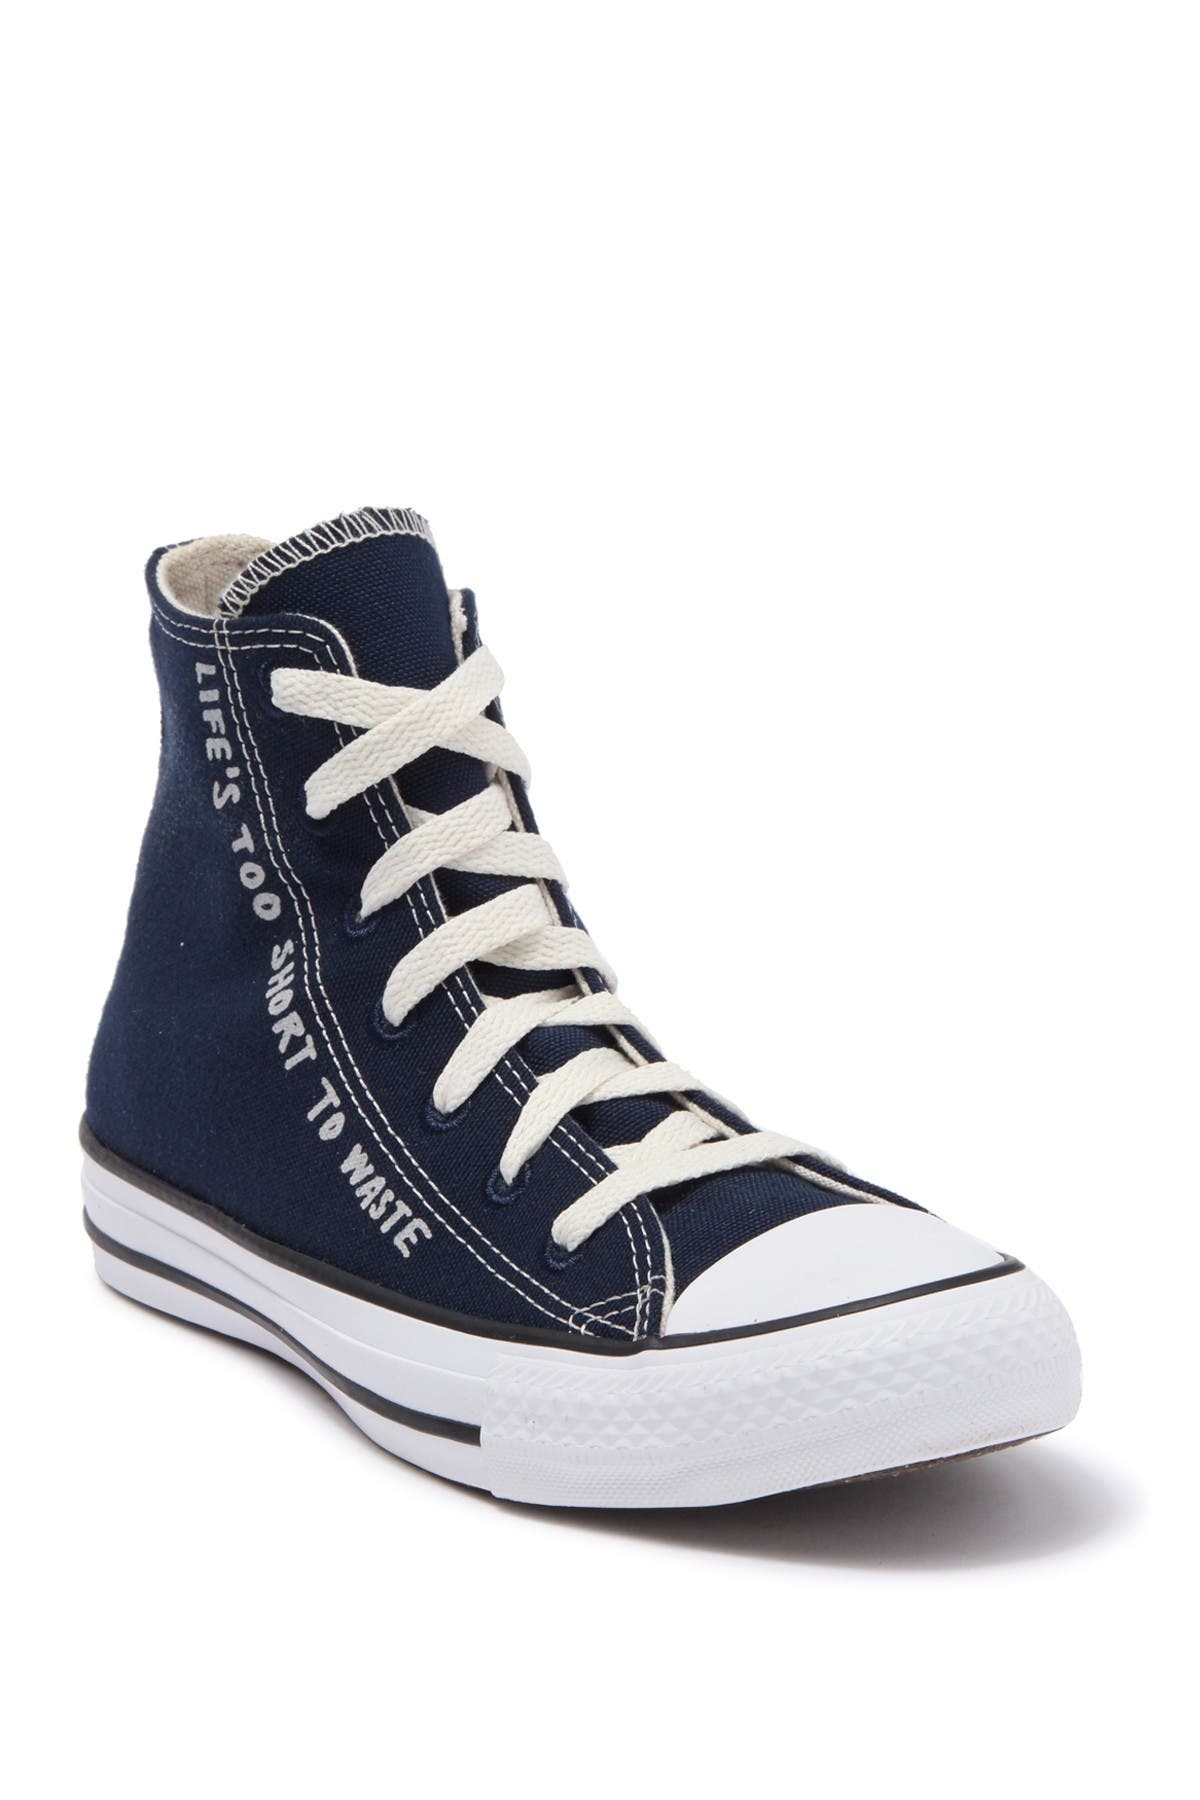 Image of Converse Chuck Taylor All Star Hi Top Sneaker